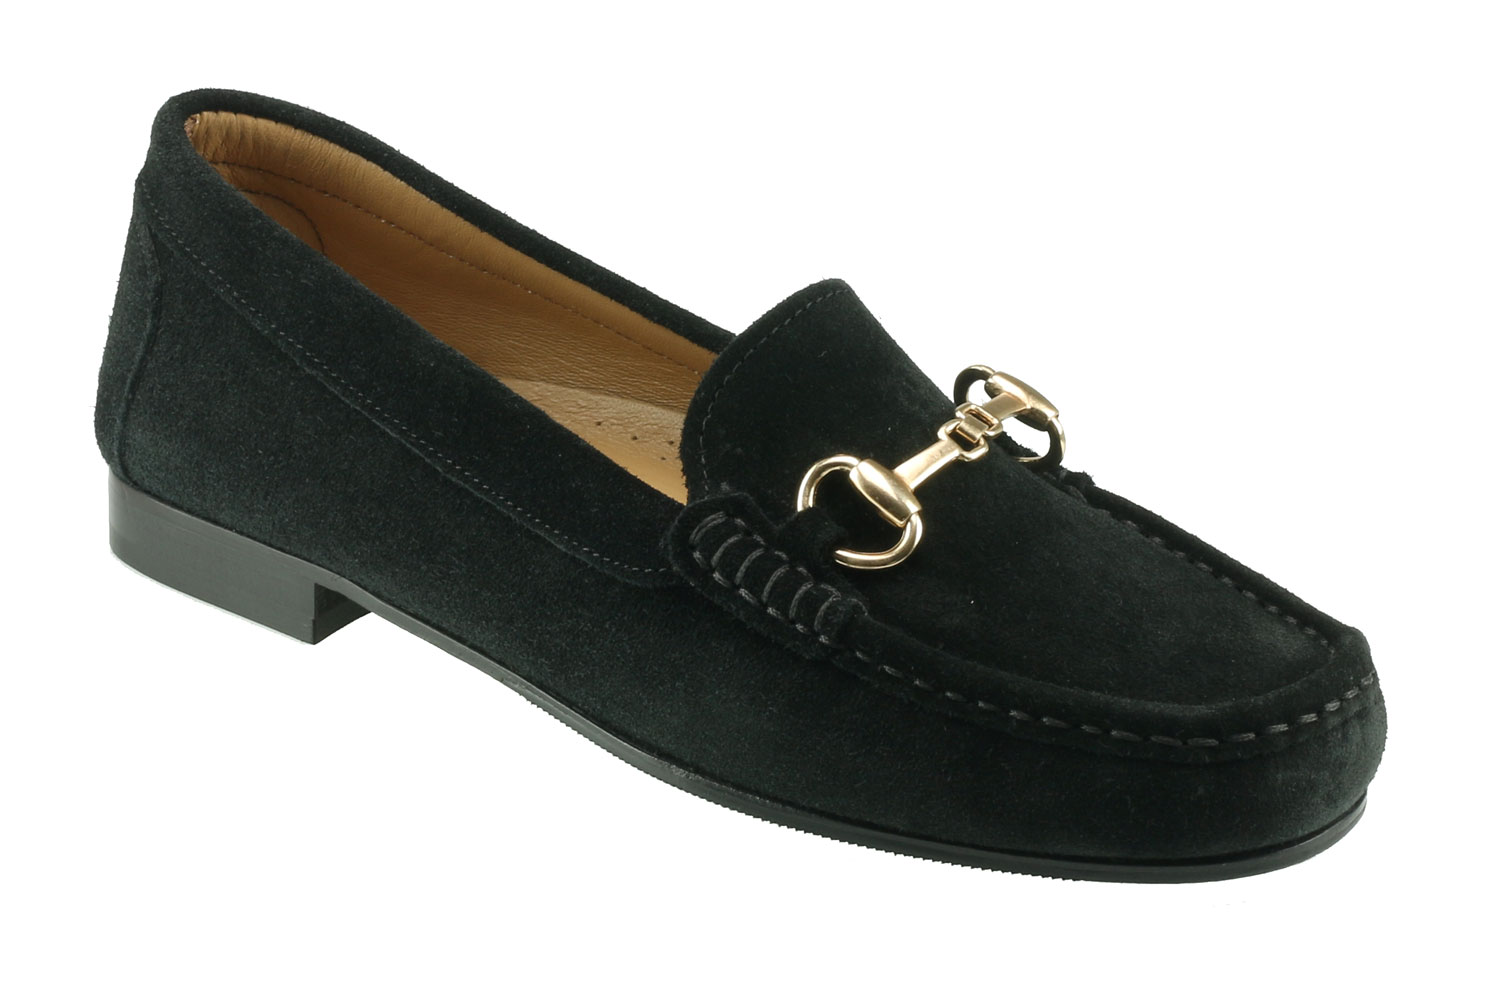 a38198e0e58 Ortona Ladies Black Suede Snaffle Loafer